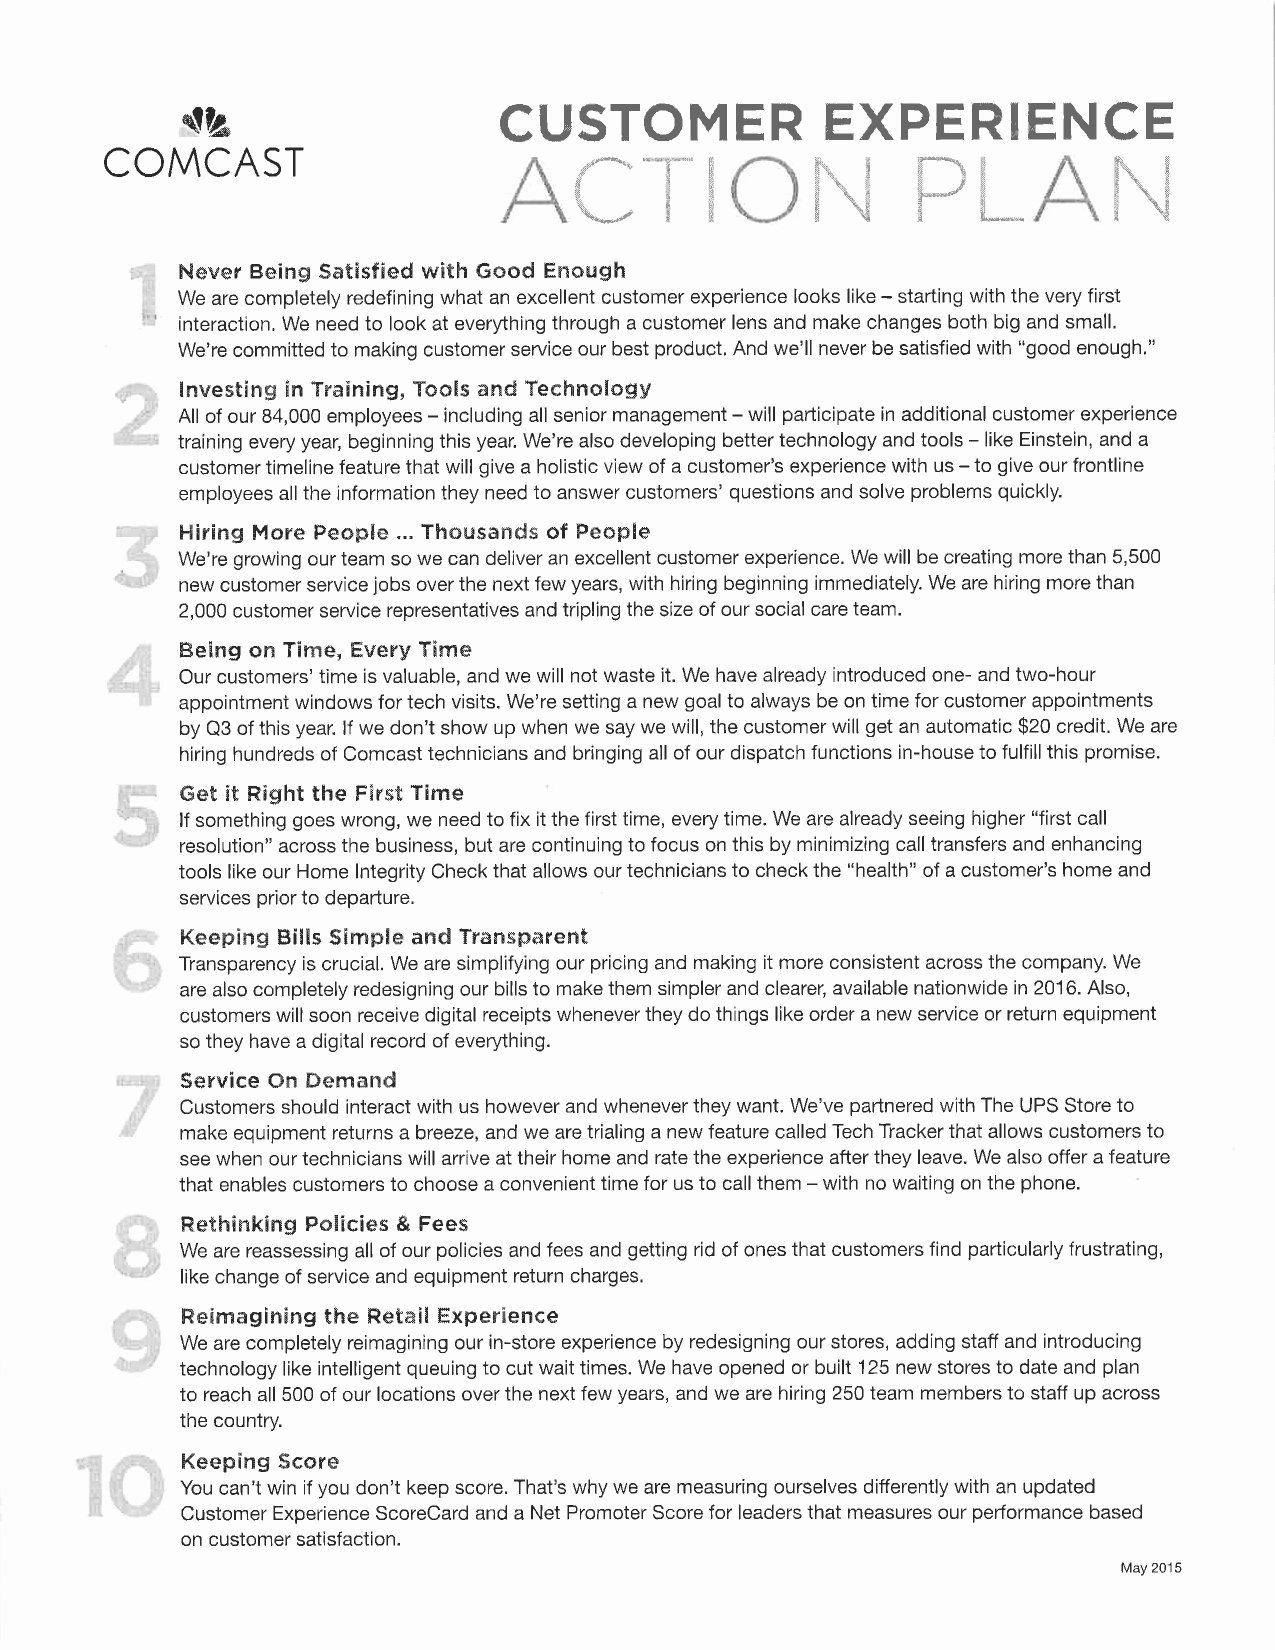 Customer Service Action Plan Examples Inspirational Retail Customer Service Action Plan Examples